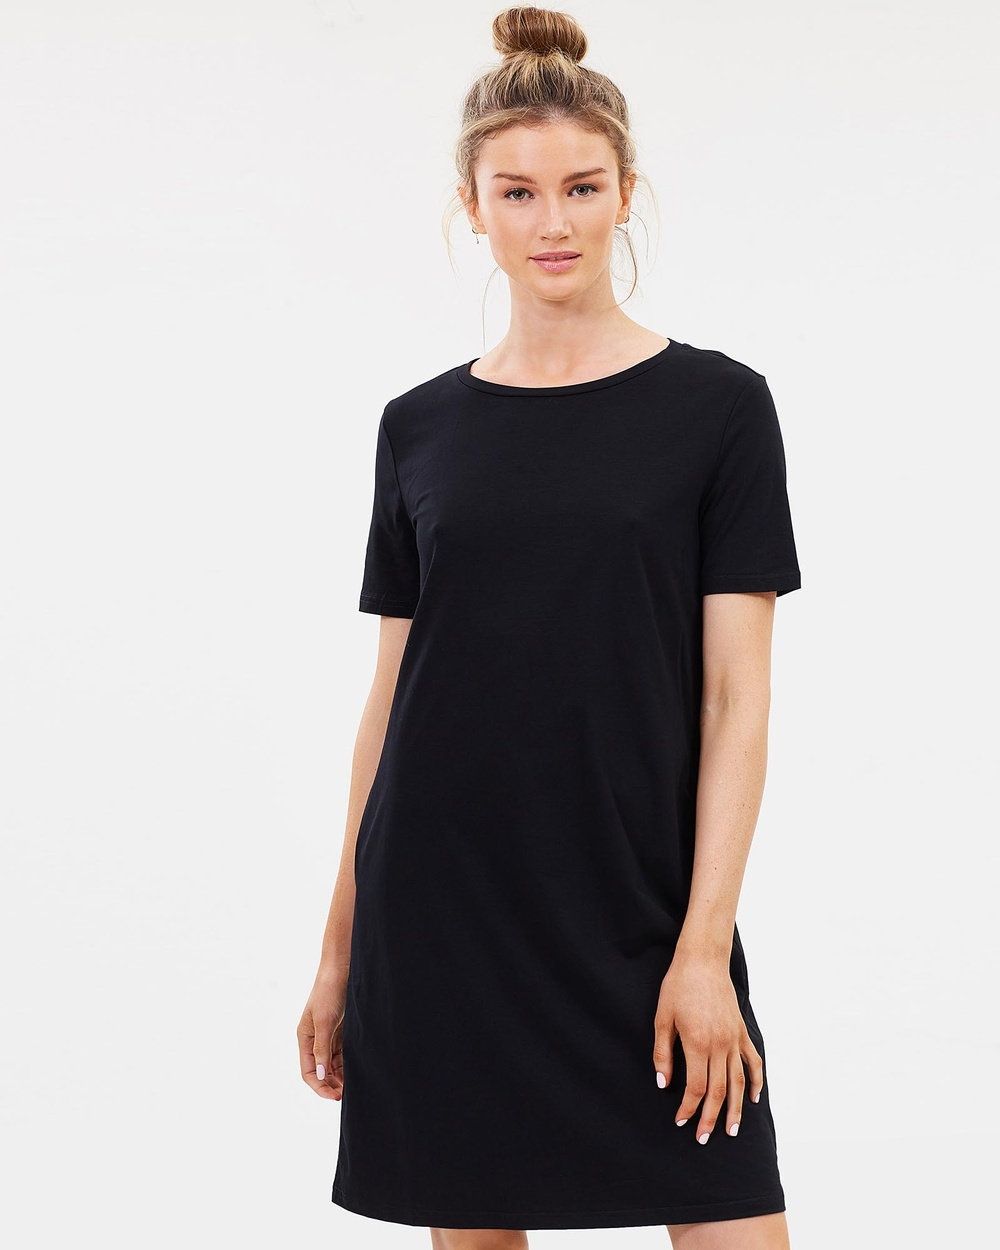 Lincoln St The Boxy Dress Dresses Black The Boxy Dress